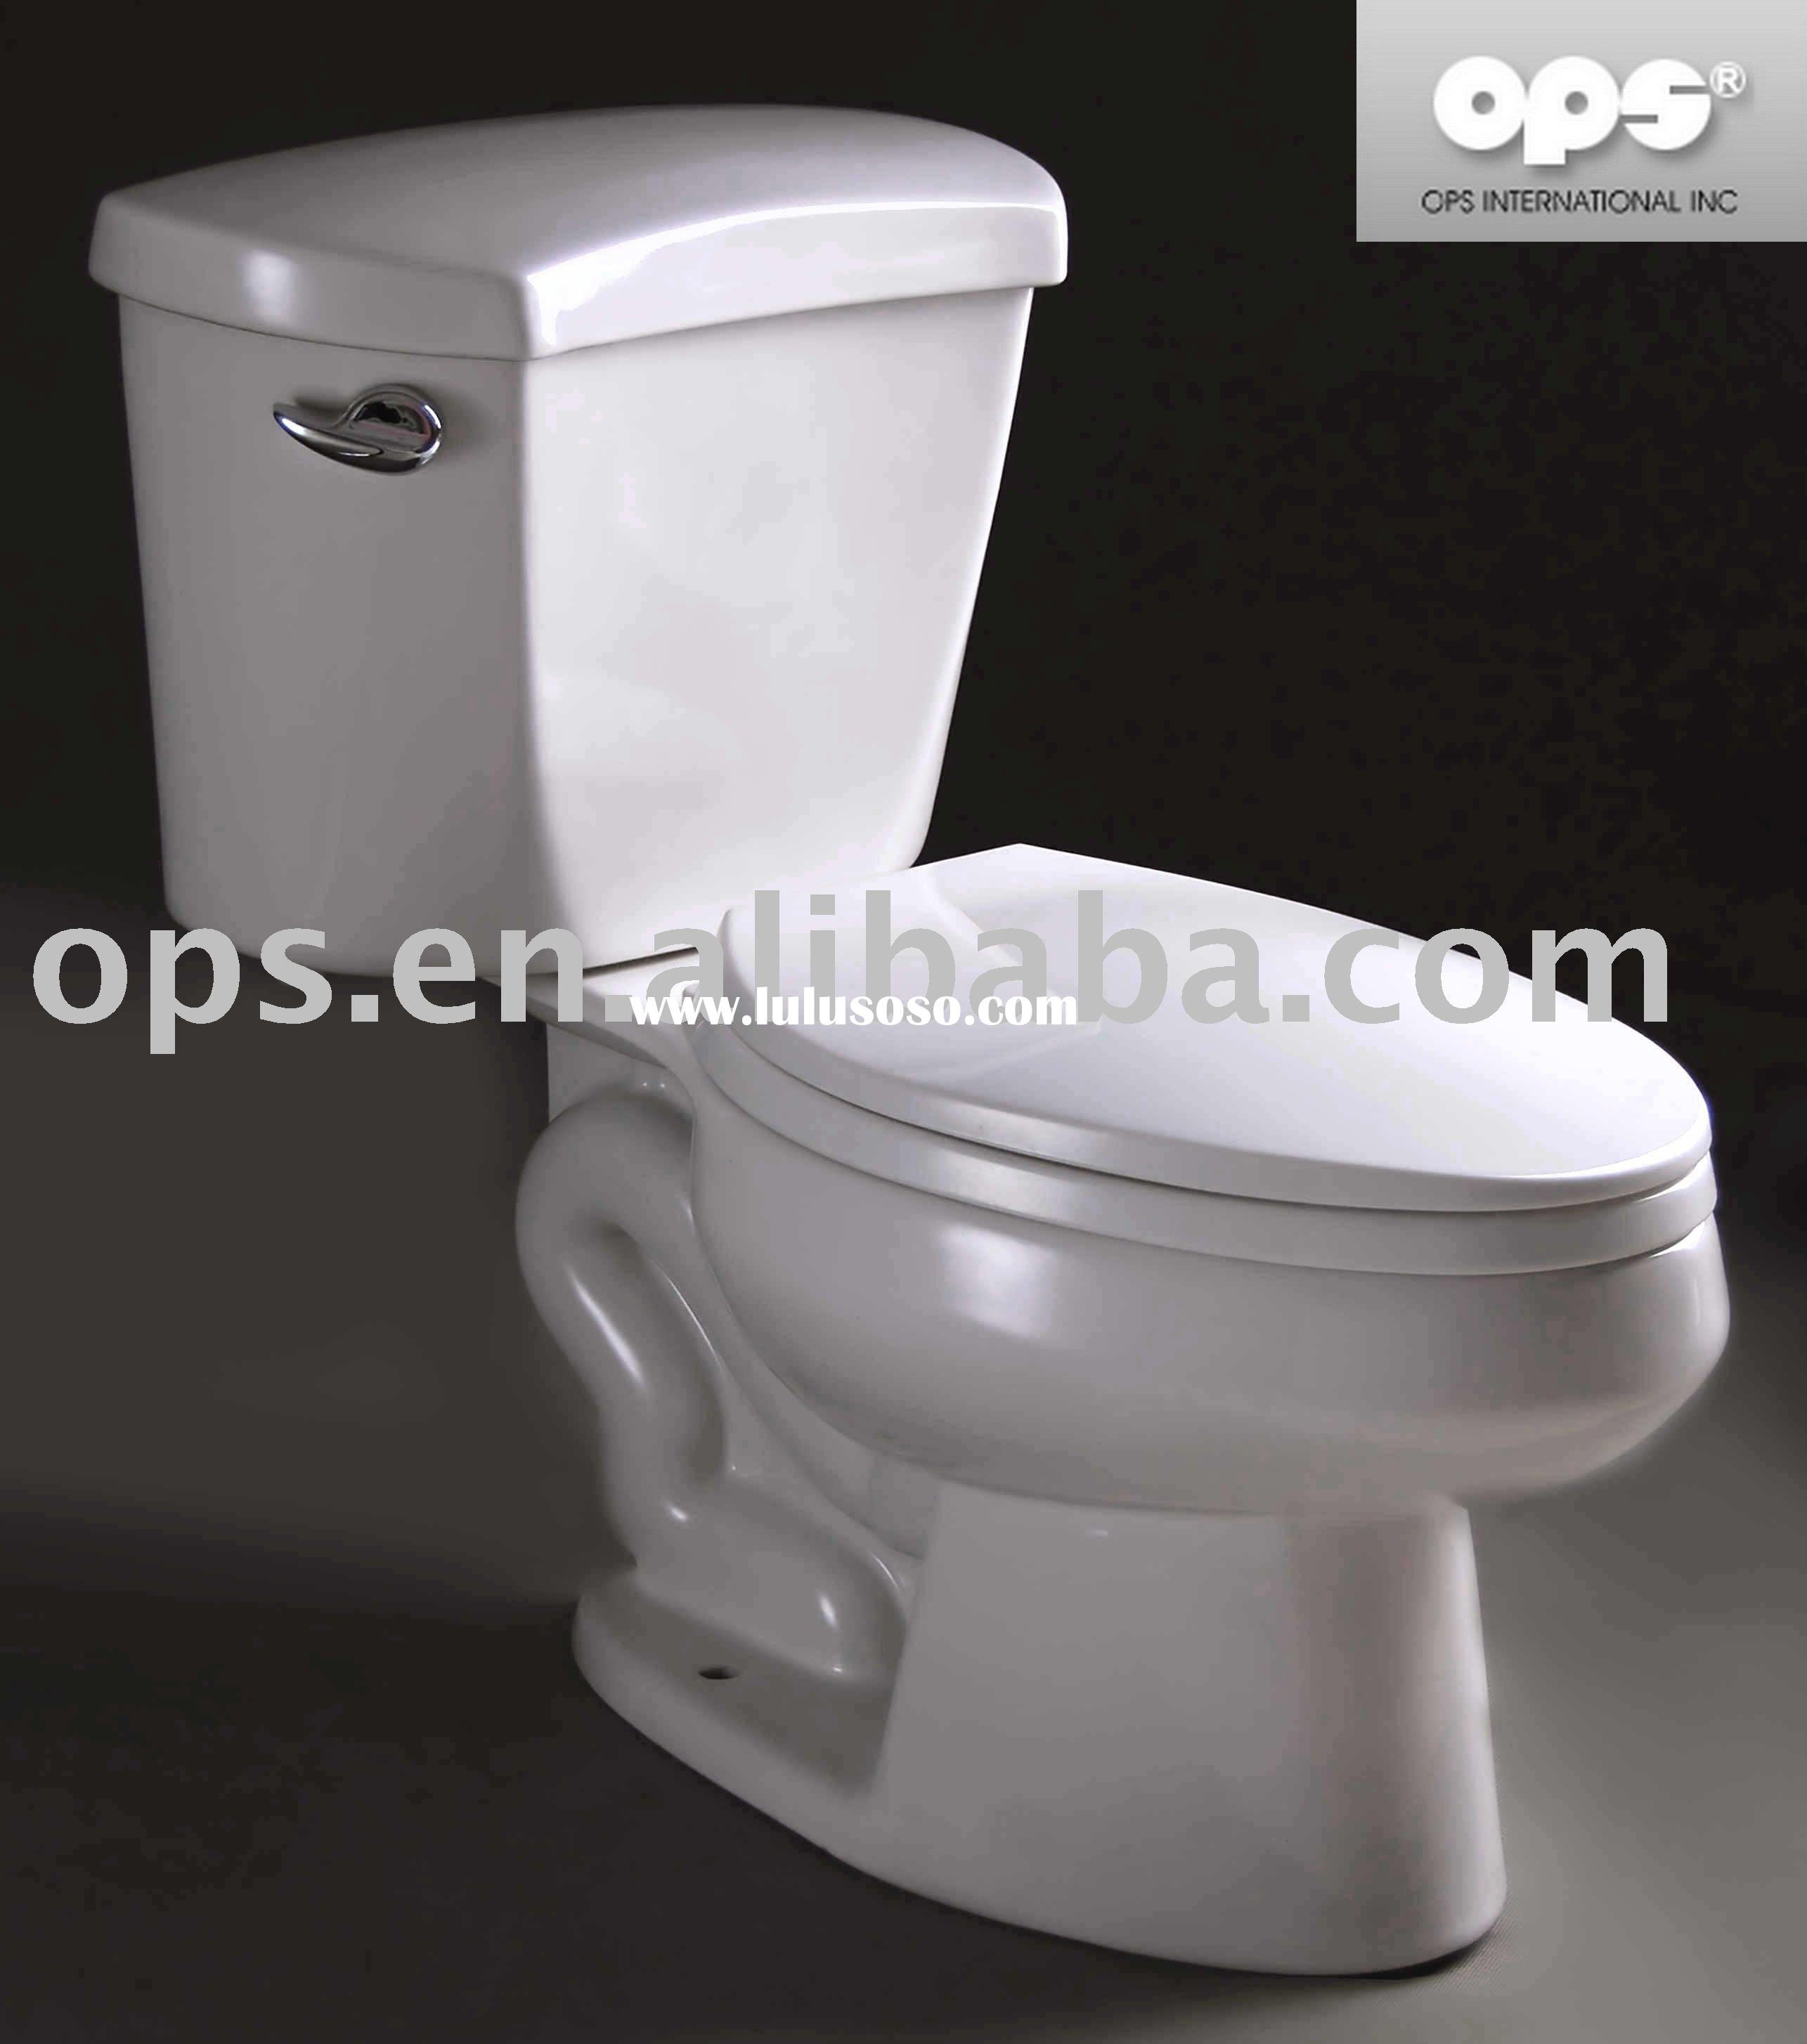 KOHLER Wellworth Two-Piece Toilet, UPC Certified